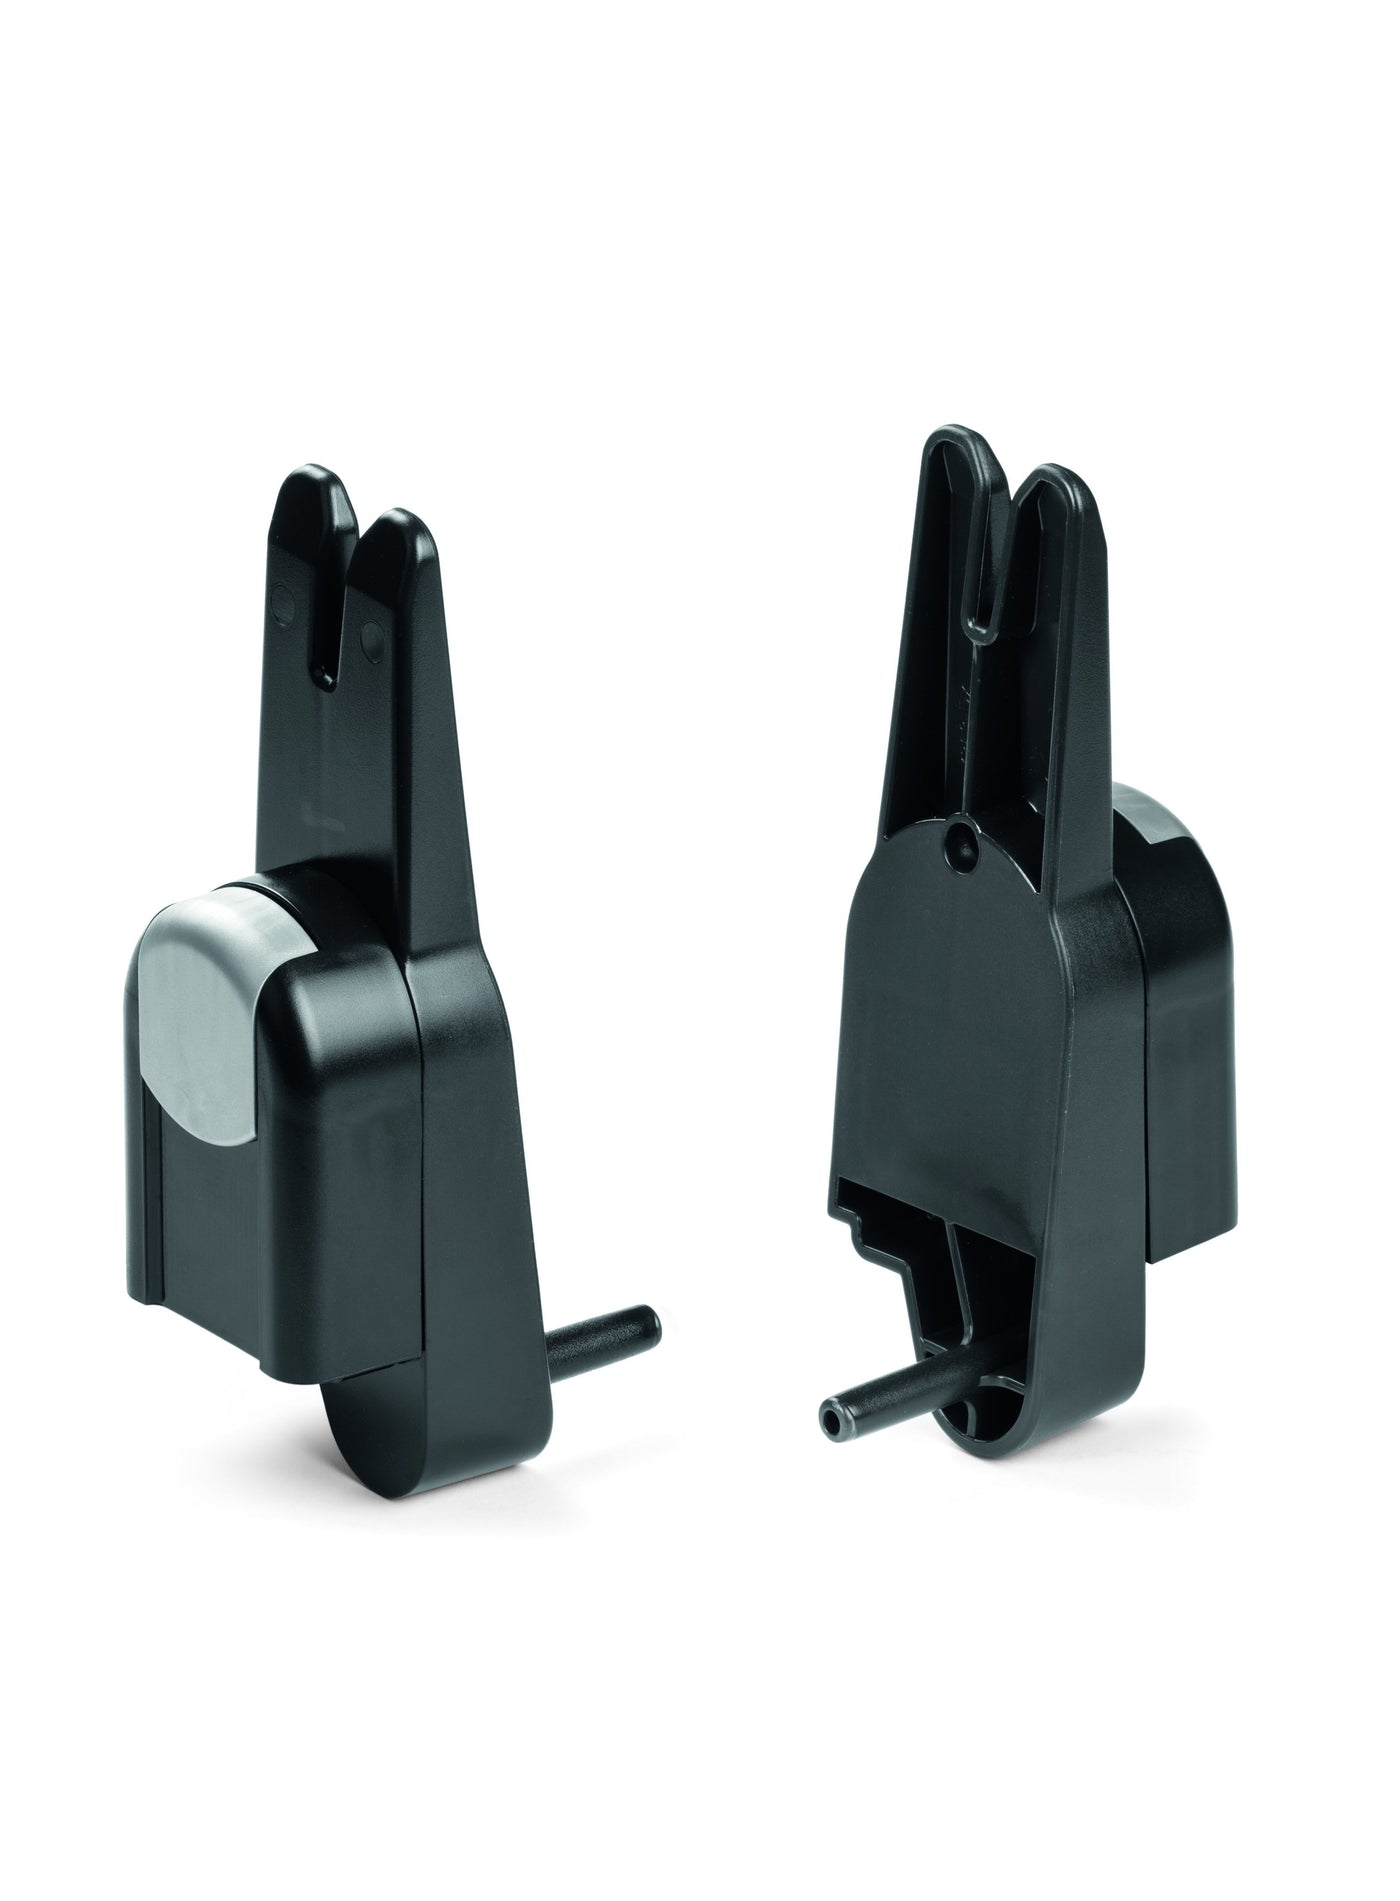 Peg Perego Primo Viaggio 4 35 Car Seat Adapter For UppaBaby Strollers